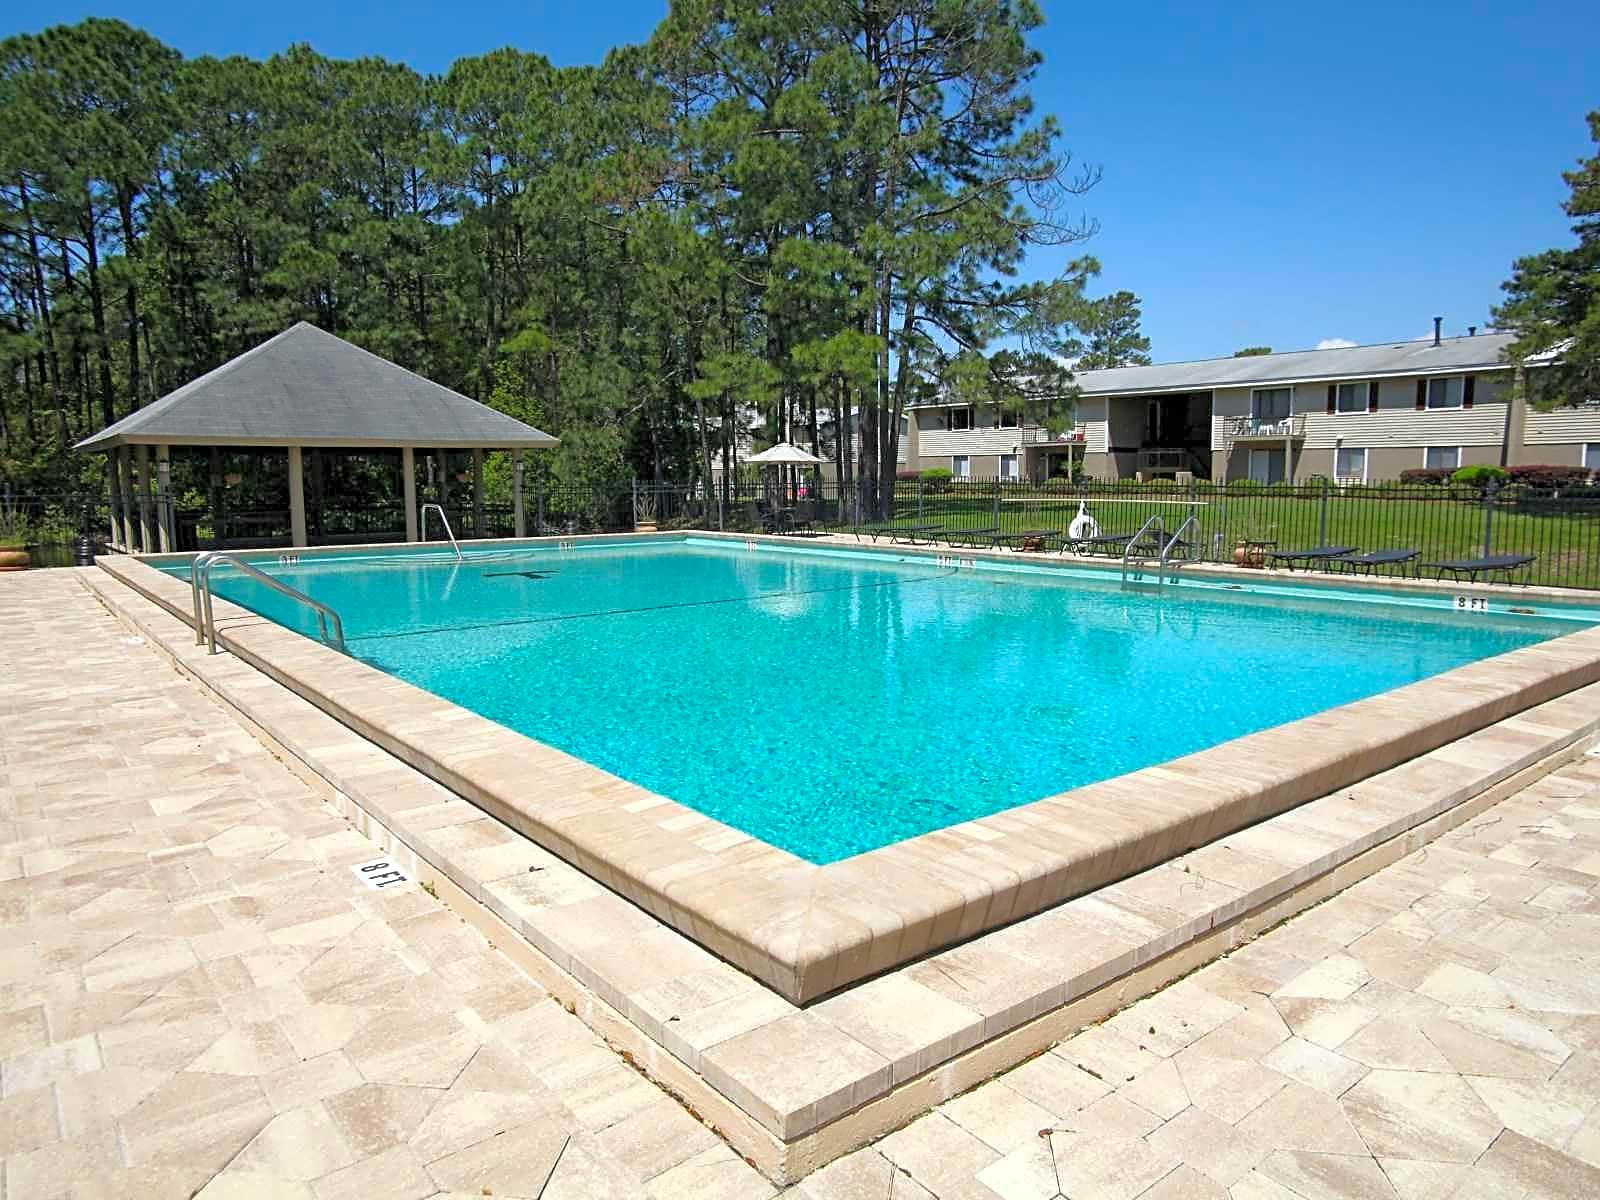 Photo: Panama City Apartment for Rent - $625.00 / month; 1 Bd & 1 Ba